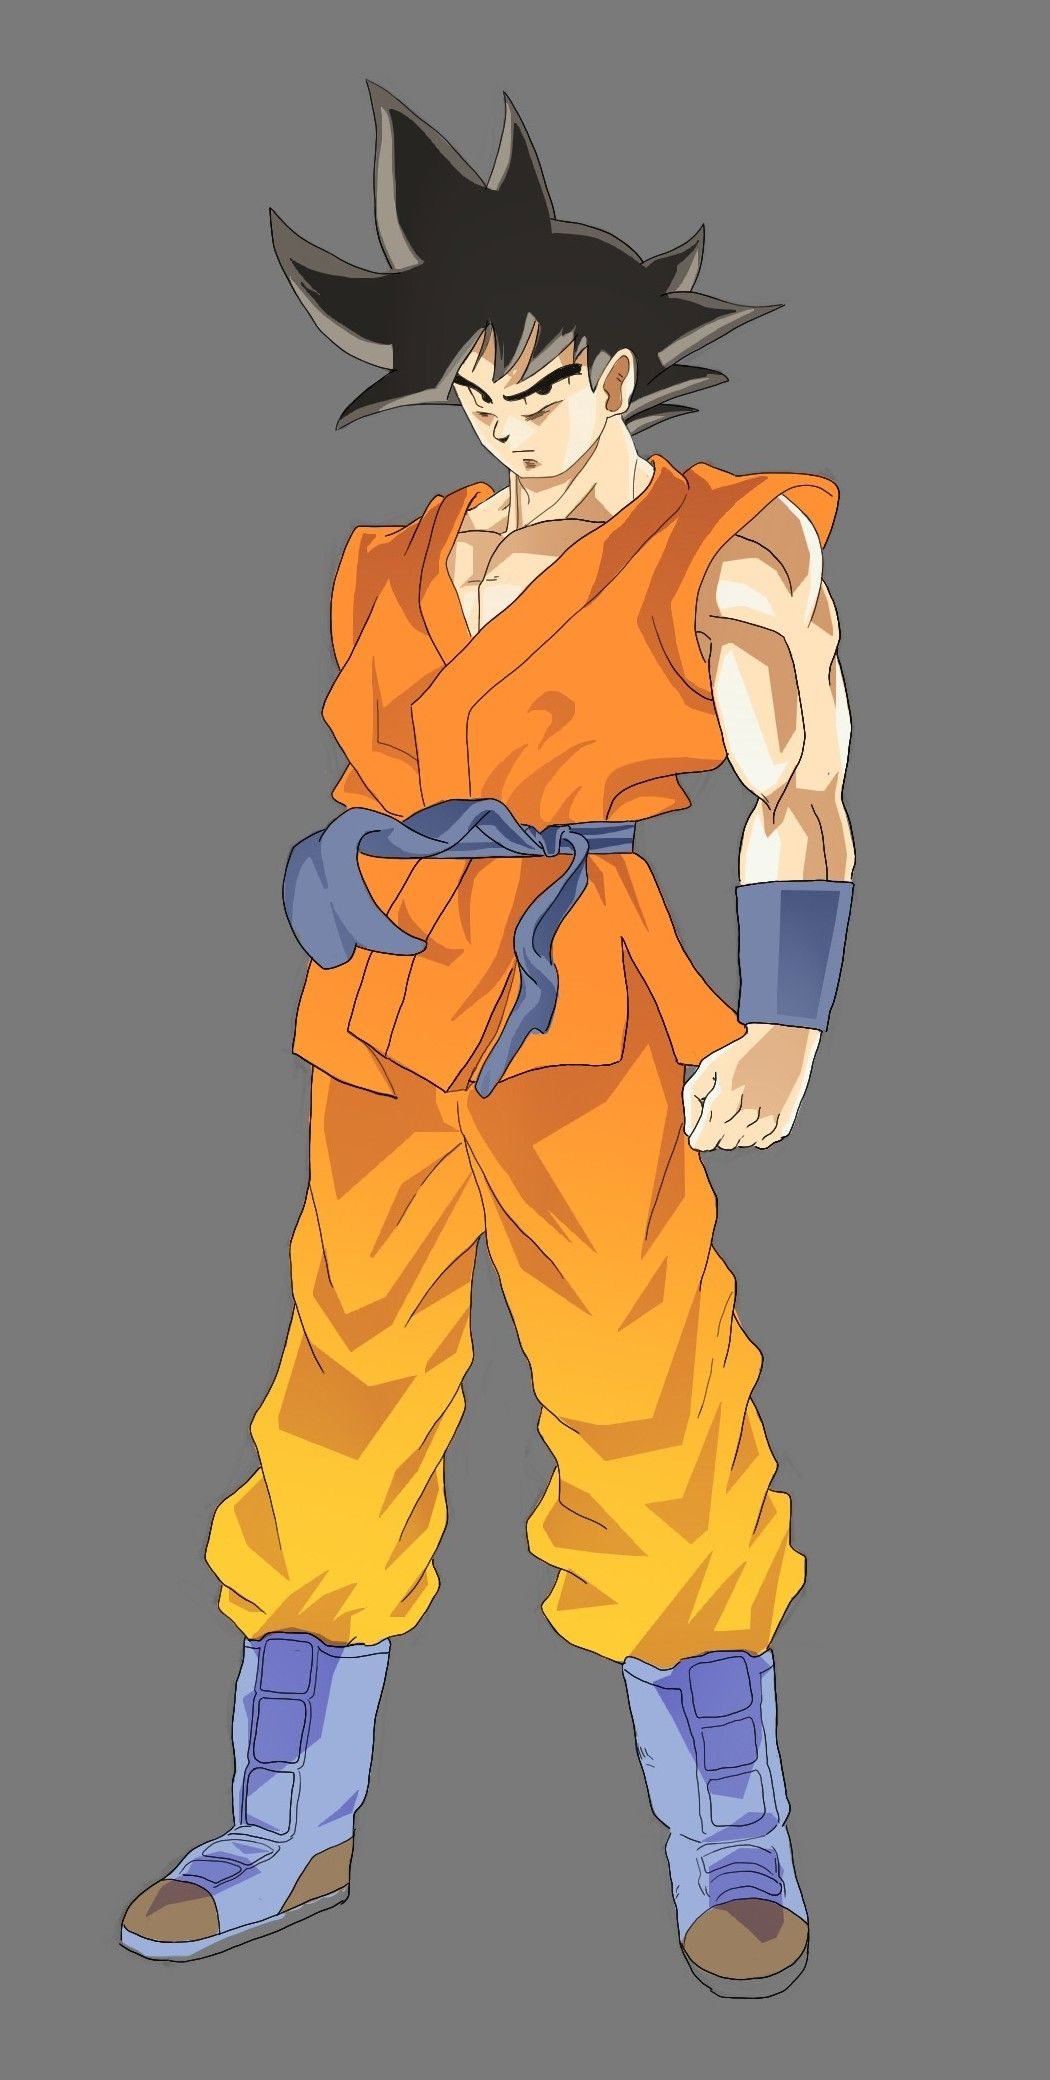 1050x2080 How To Draw Goku From Dragonball